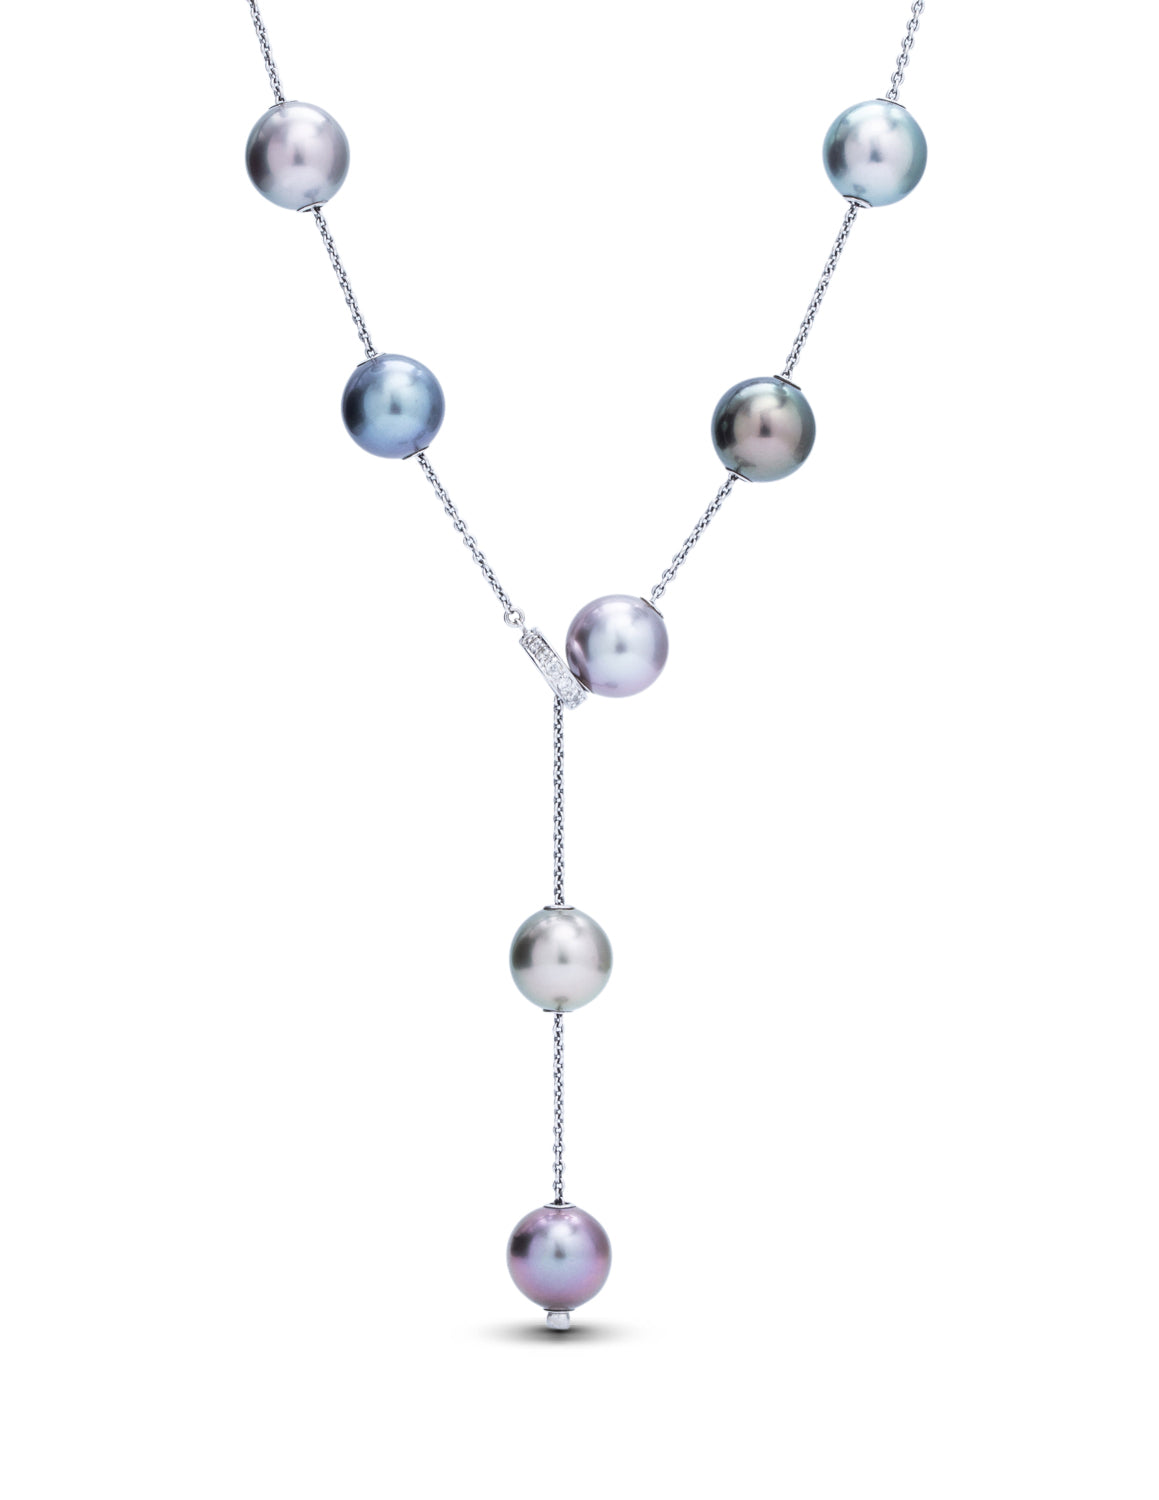 Tahitian Pearl Necklace - Charles Koll Jewellers